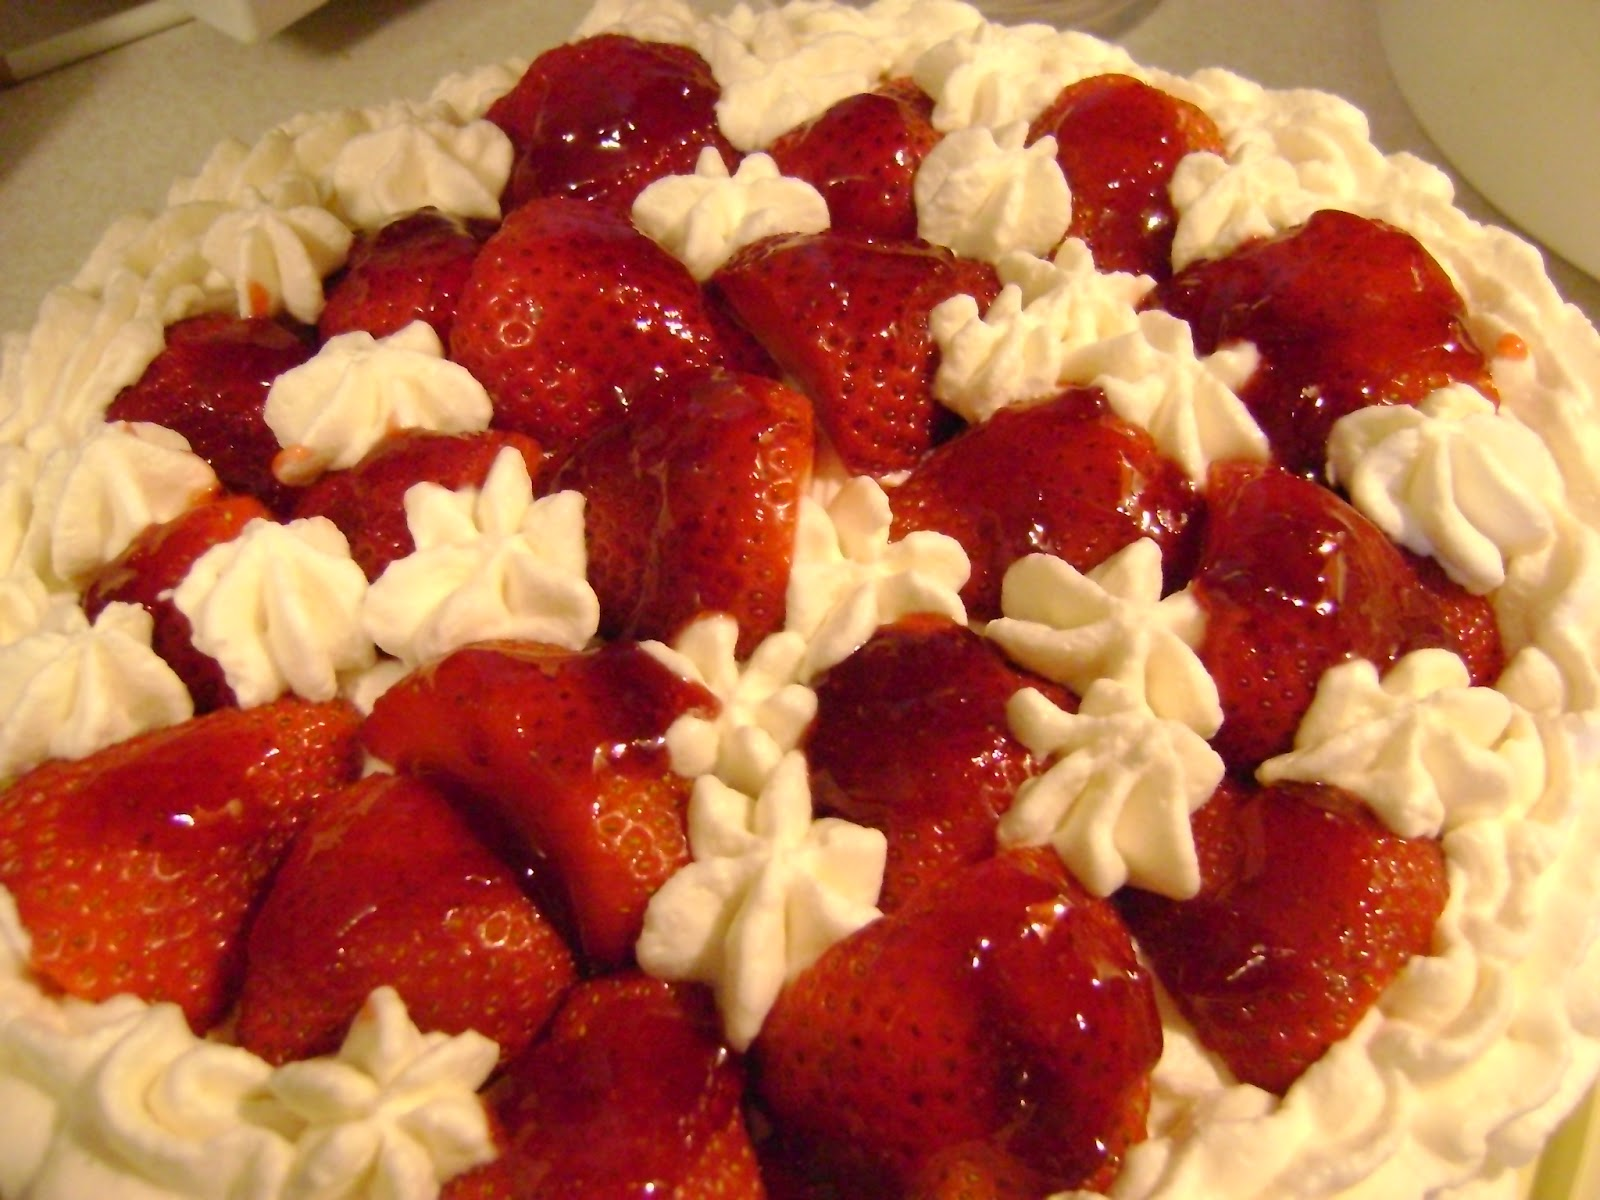 ... : Chiffon Cake with Strawberries and Whipped Cream Cheese Frosting